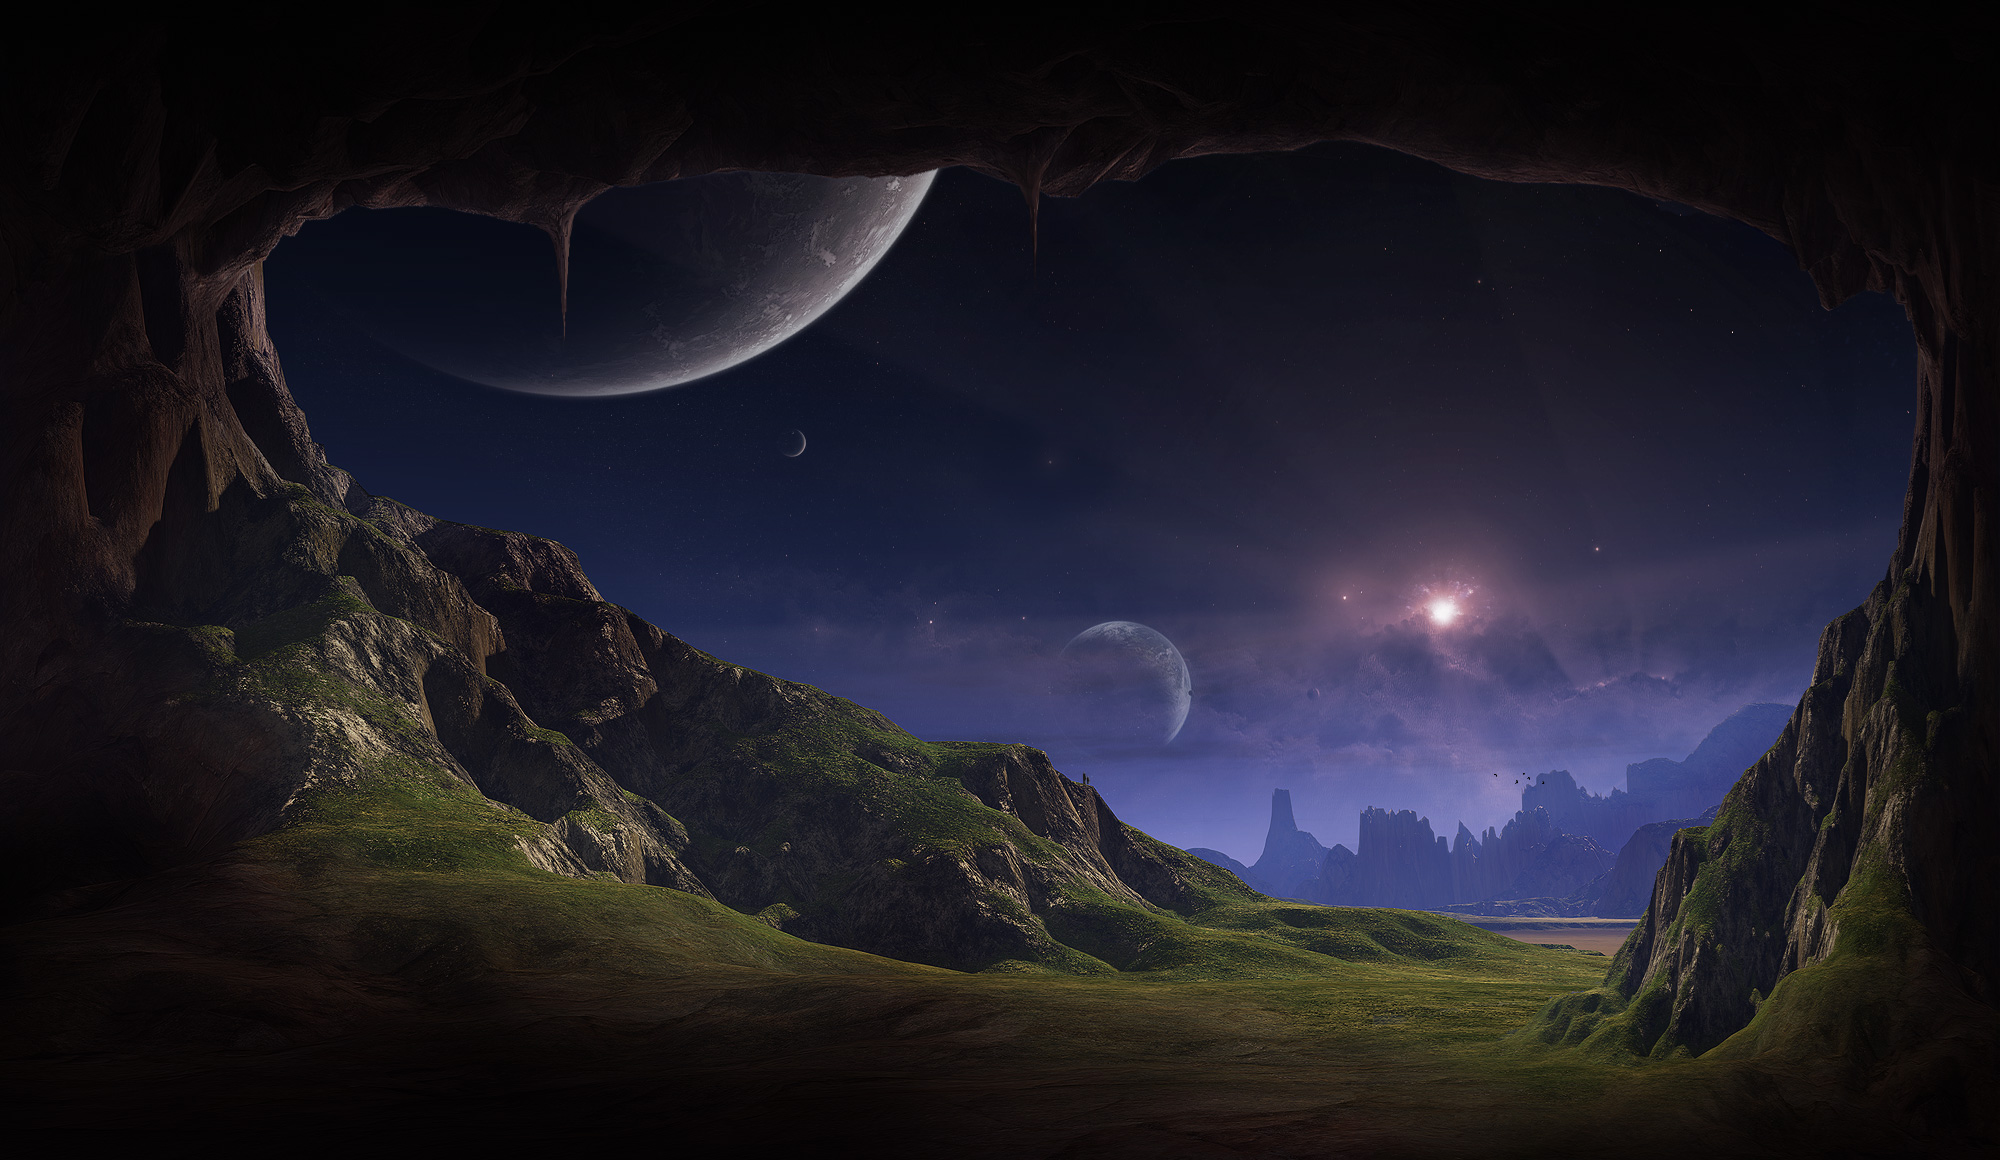 sci fi landscape alien planets - photo #1